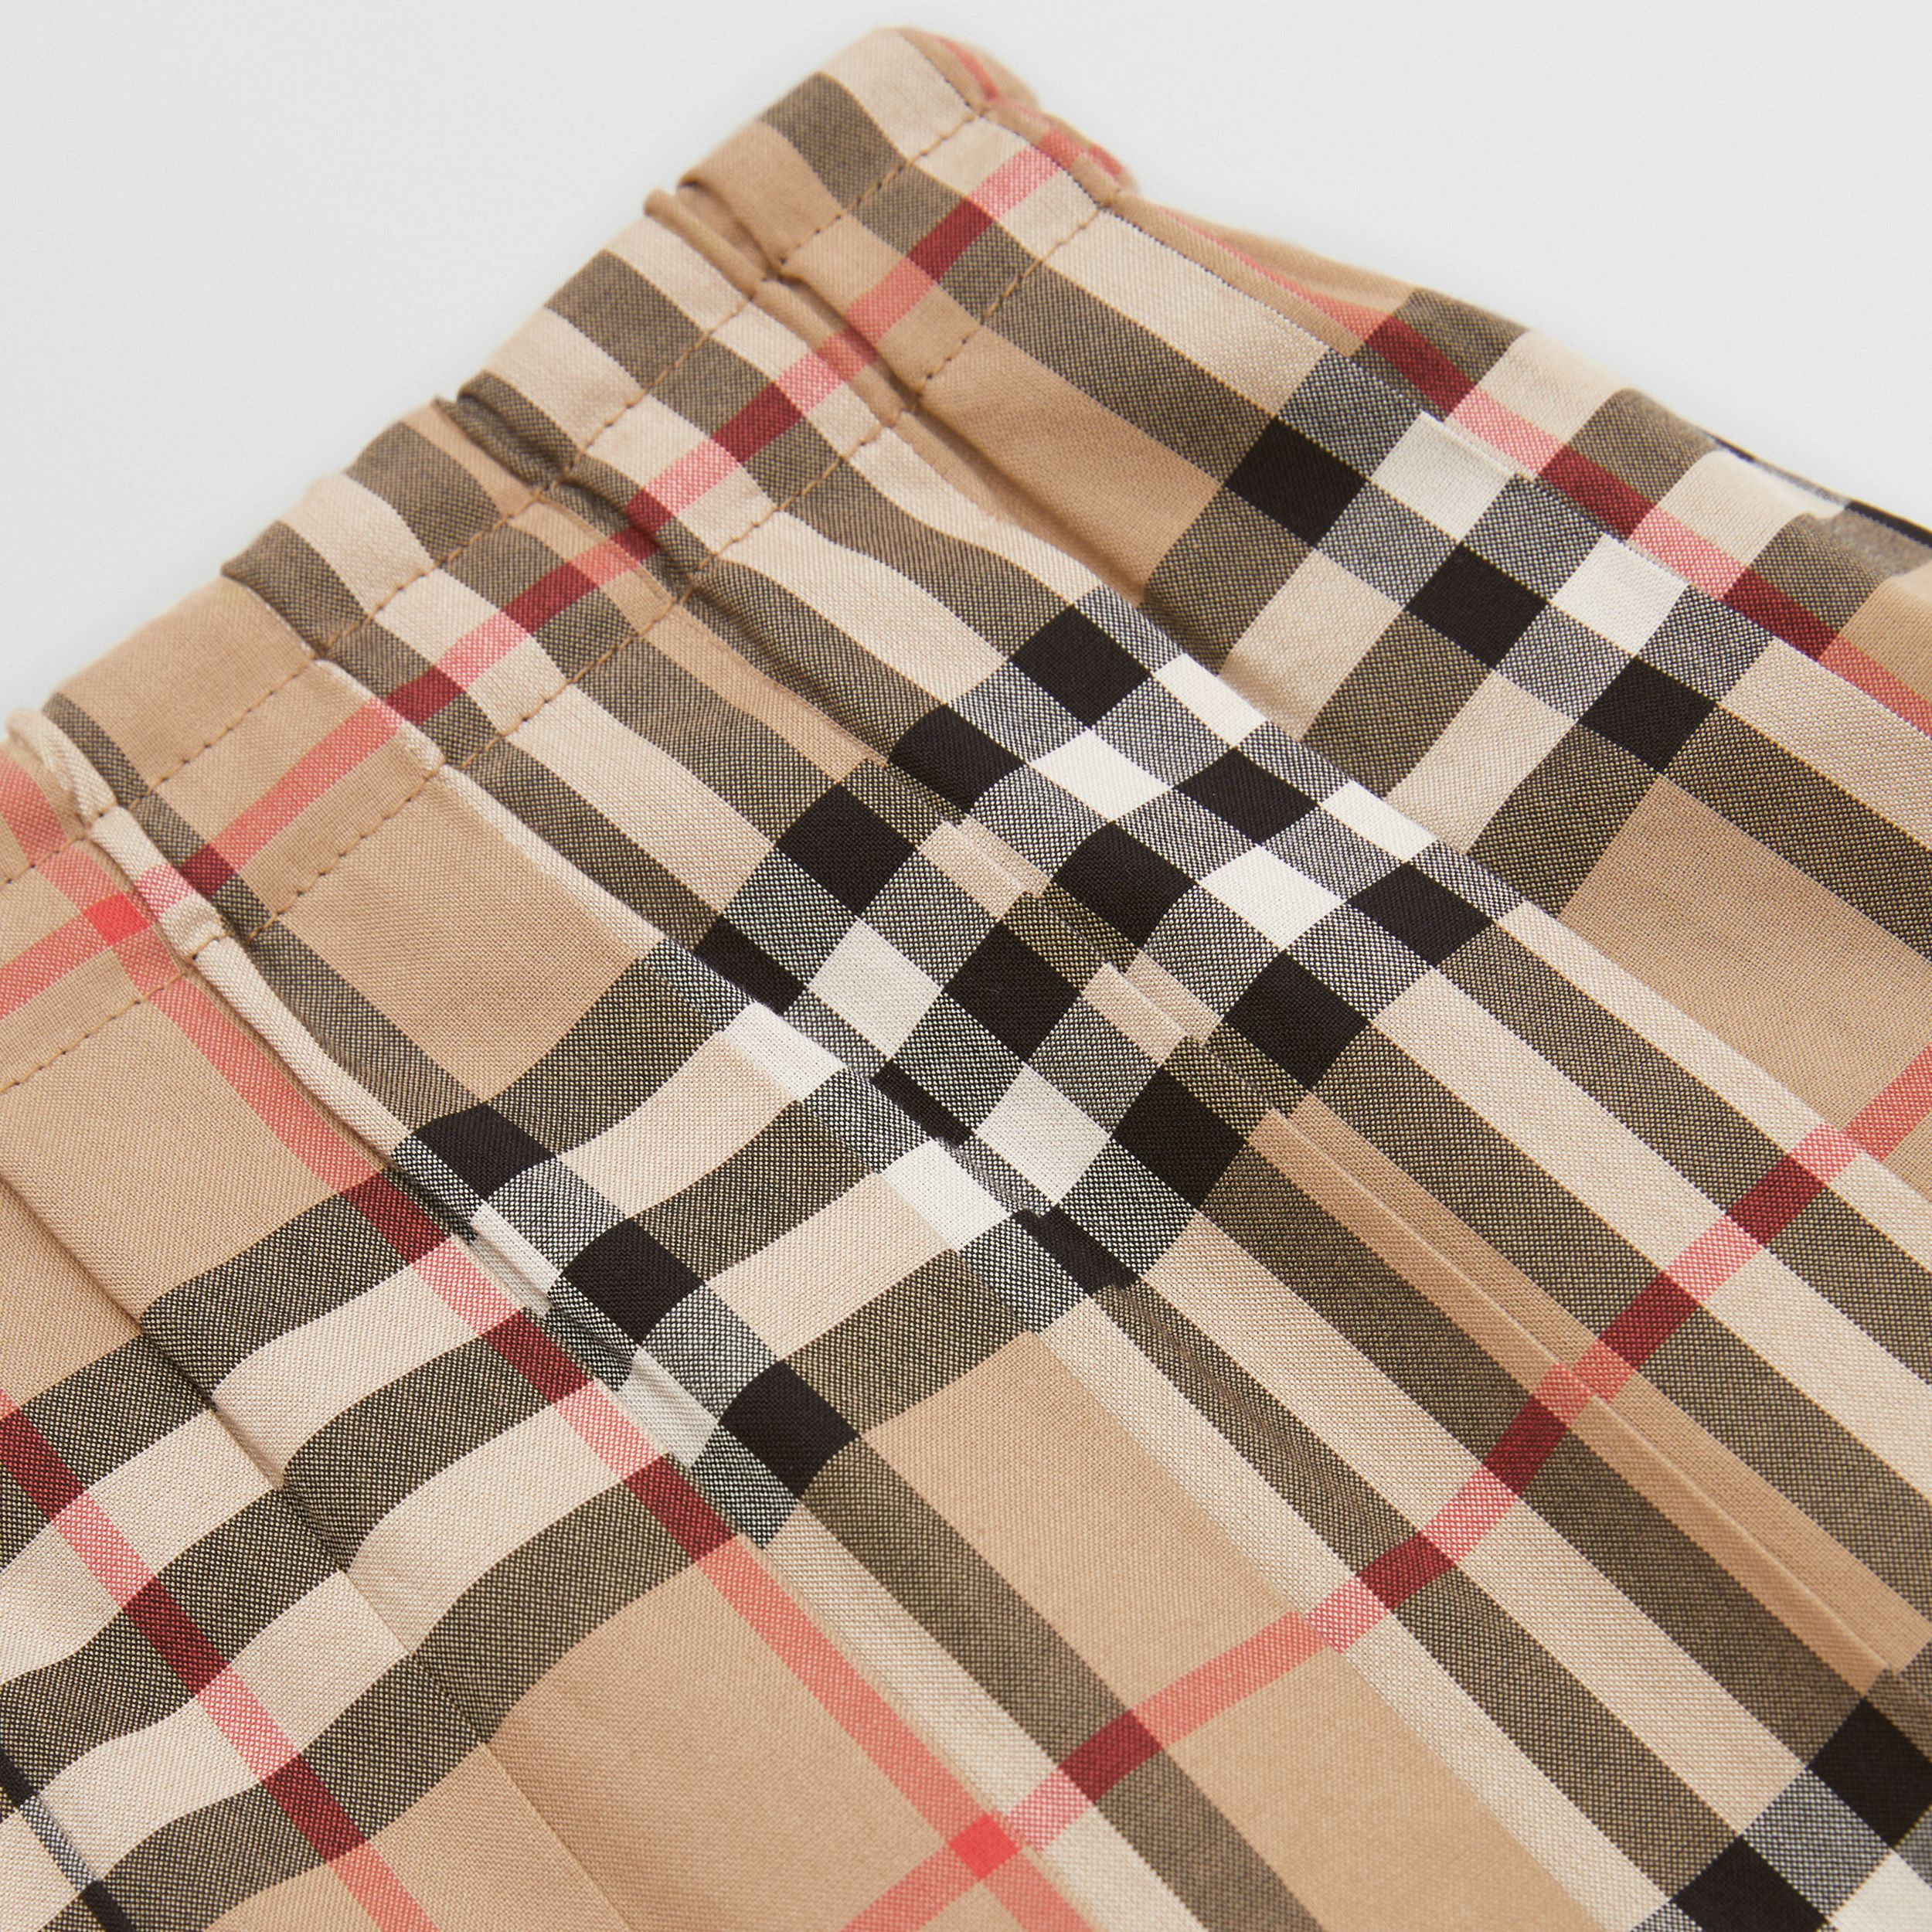 Vintage Check Cotton Pleated Skirt in Archive Beige | Burberry Australia - 2